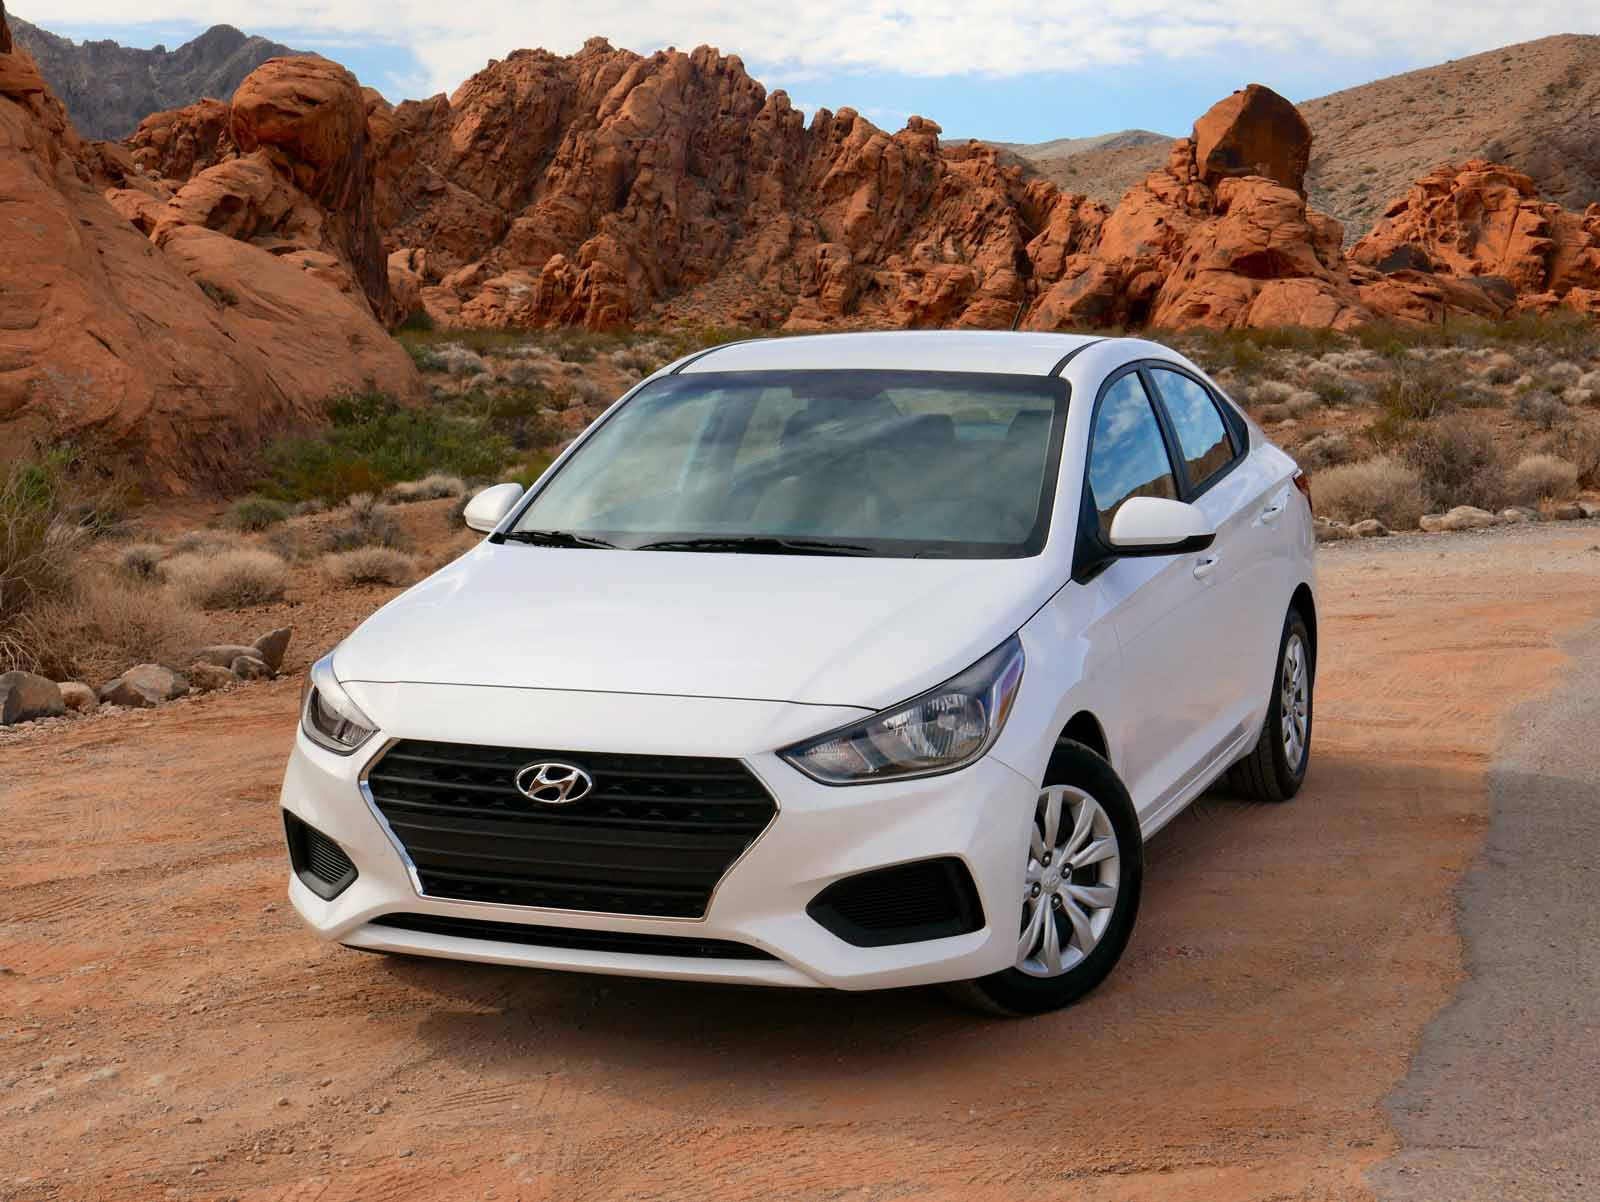 2018 Hyundai Accent Review HUNTING 5 hyundai elantra forum  at gsmx.co